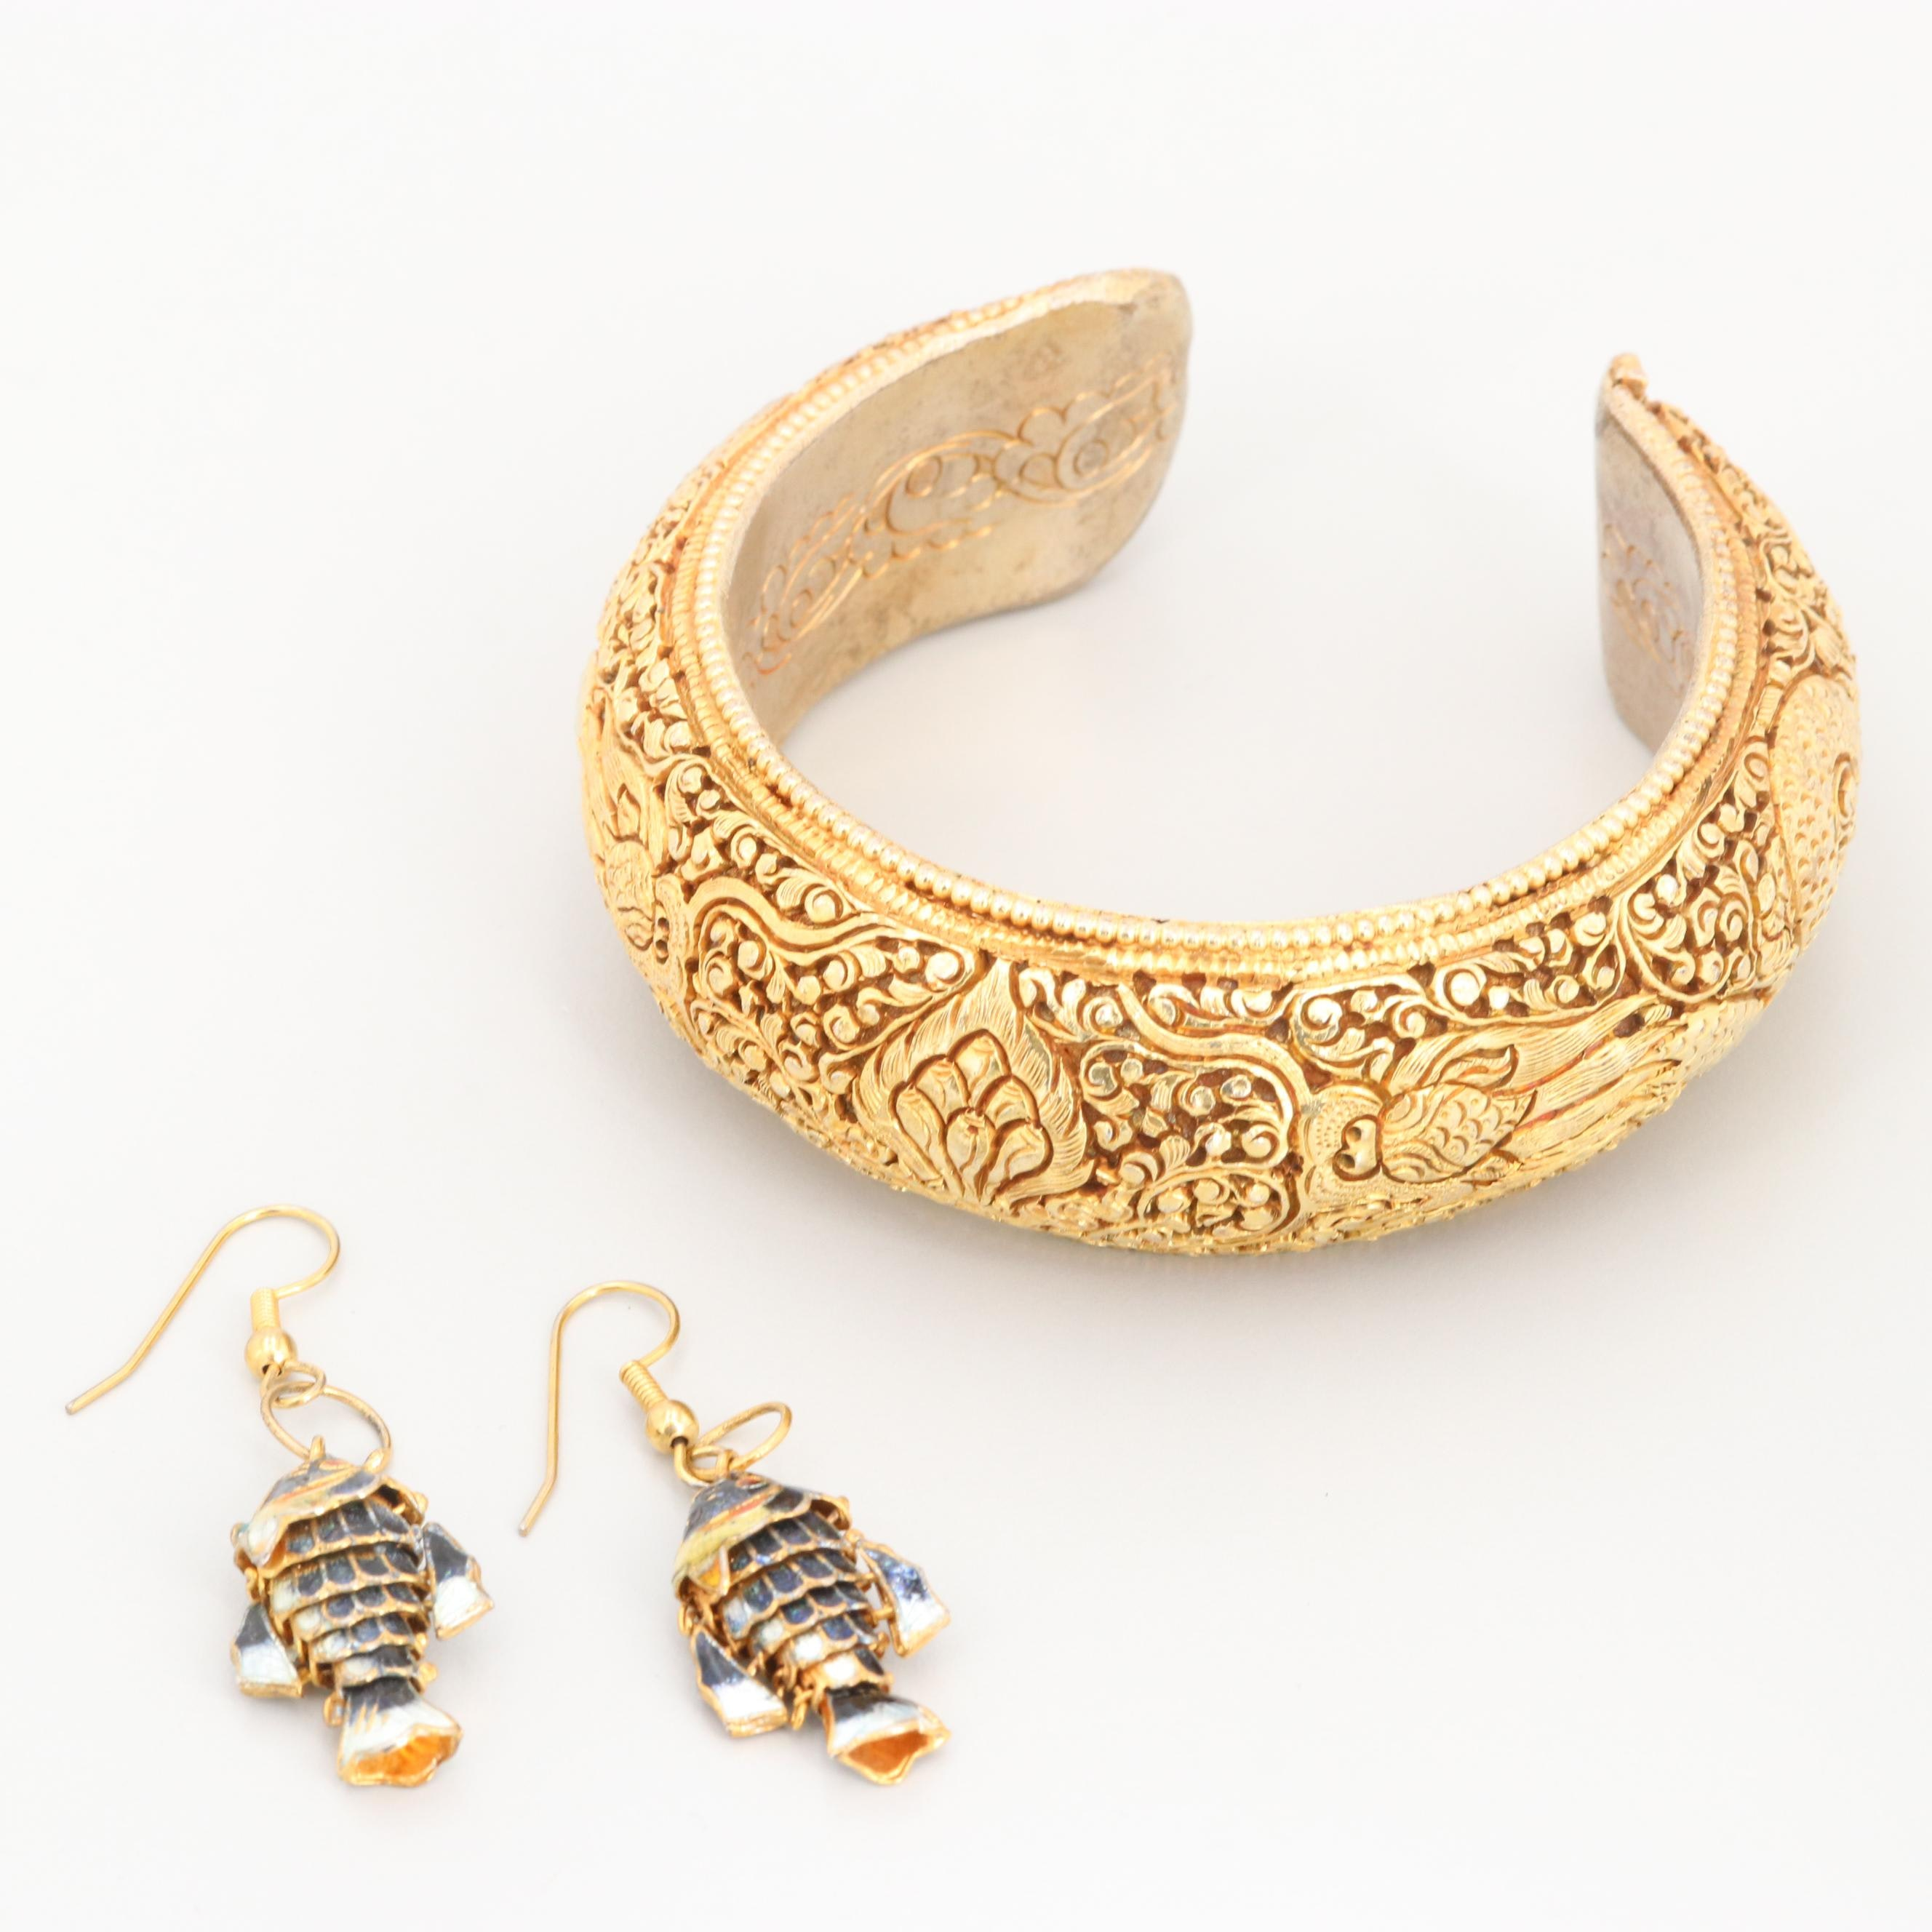 Chinese Enamel Articulated Fish Earrings and Tibetan Gold Tone Cuff Bracelet